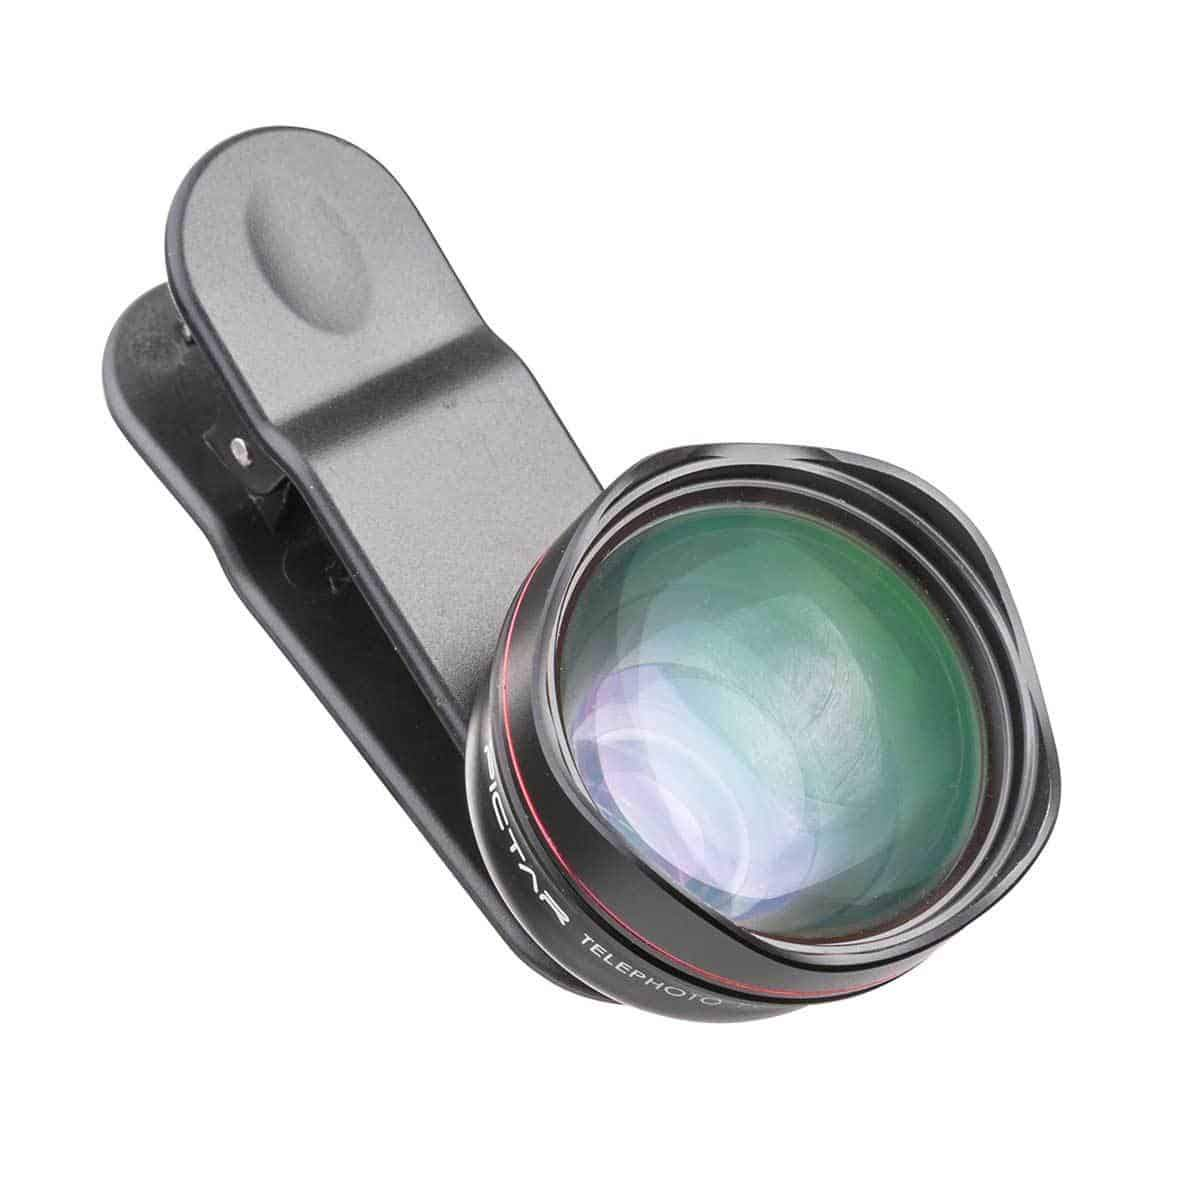 Pictar Telephoto 60mm Smartphone Lens